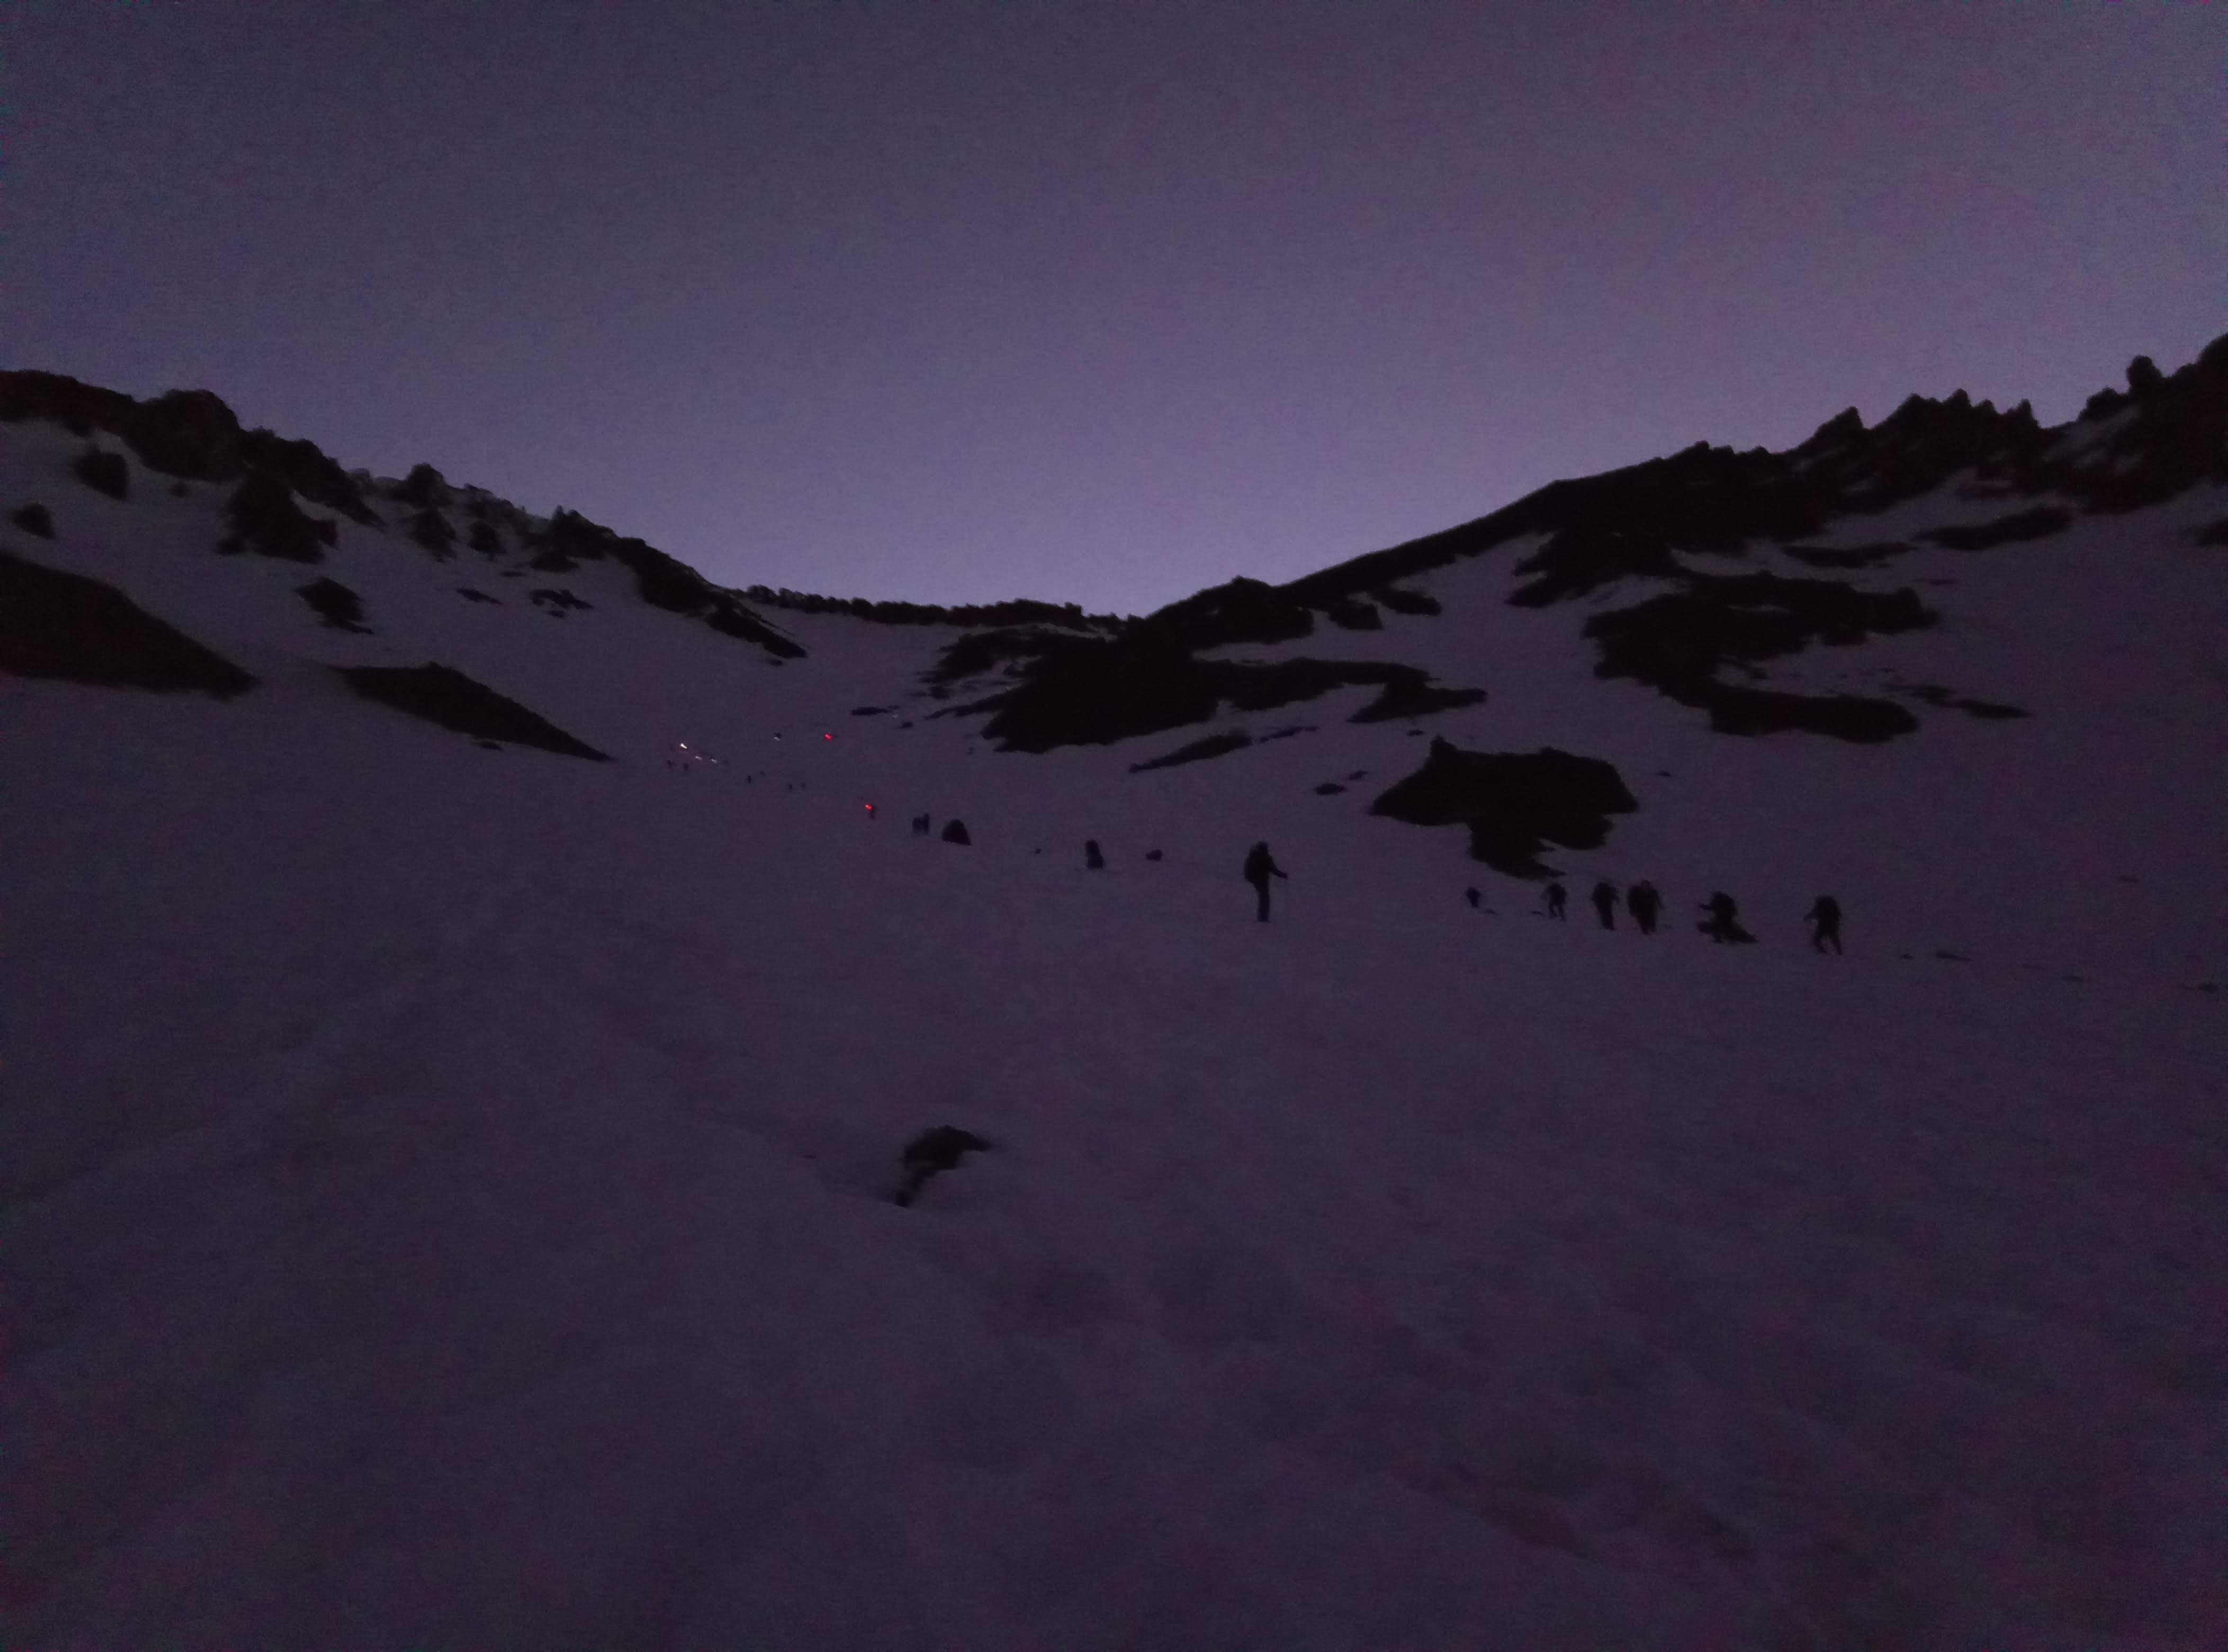 Avalanche gulch, early morning